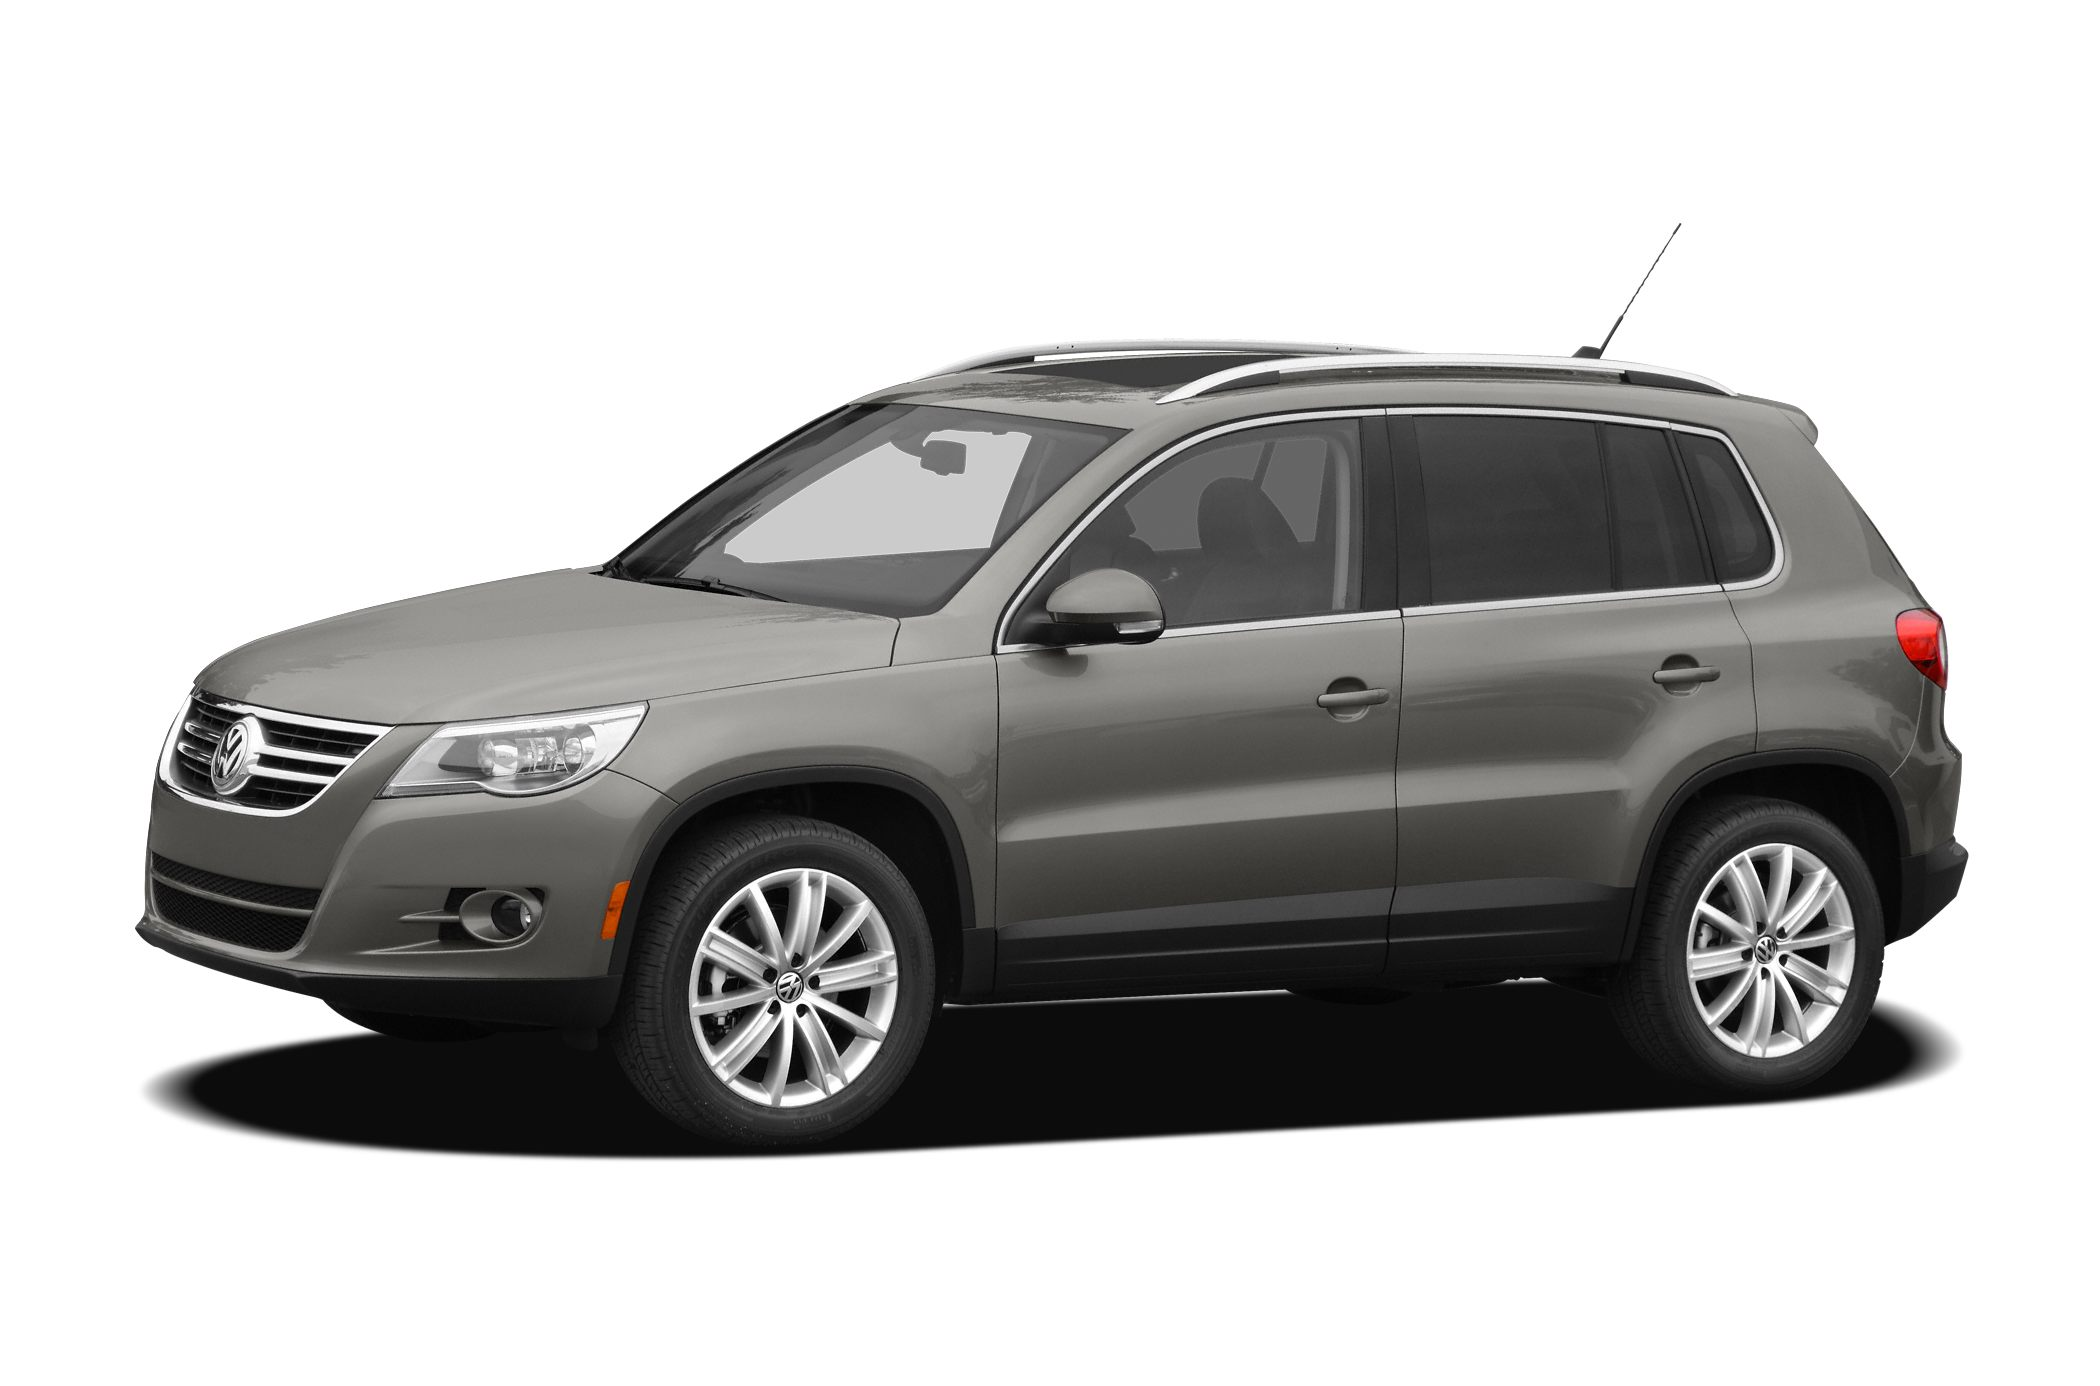 2009 Volkswagen Tiguan SEL SUV for sale in Littleton for $18,990 with 41,915 miles.